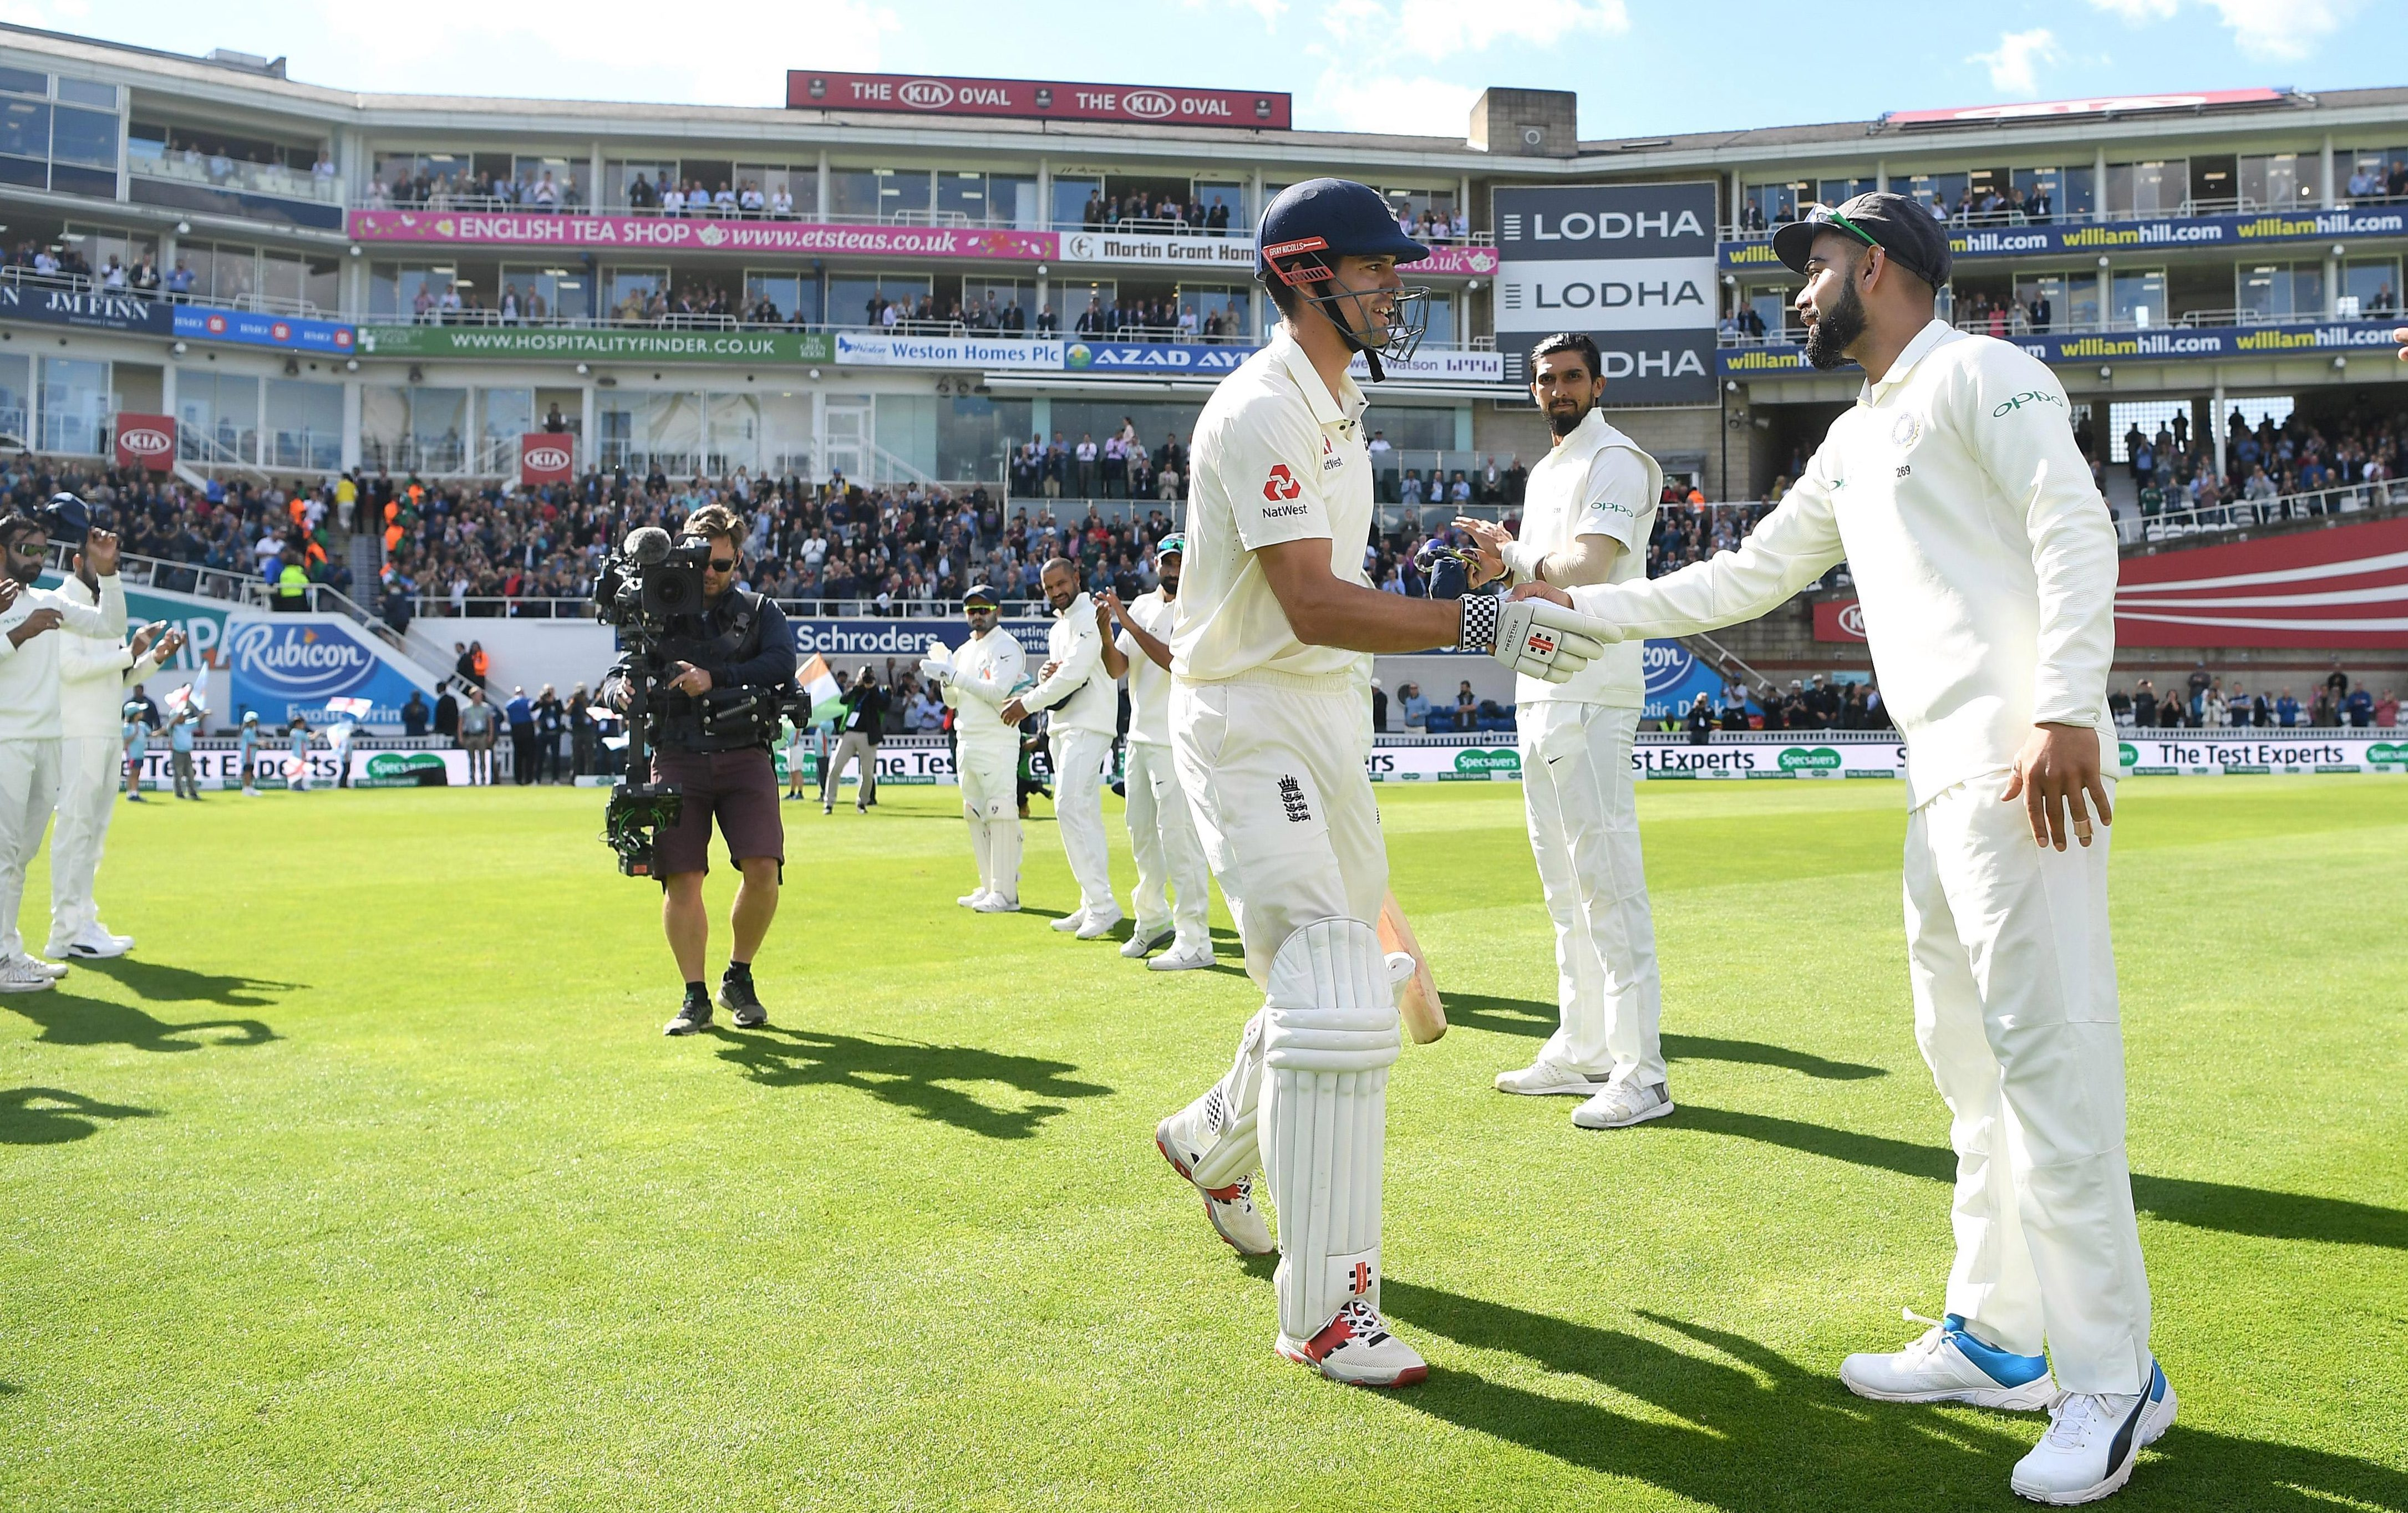 India's team made a guard of honour for the retiring legend, with skipper Virat Kohli shaking his hand